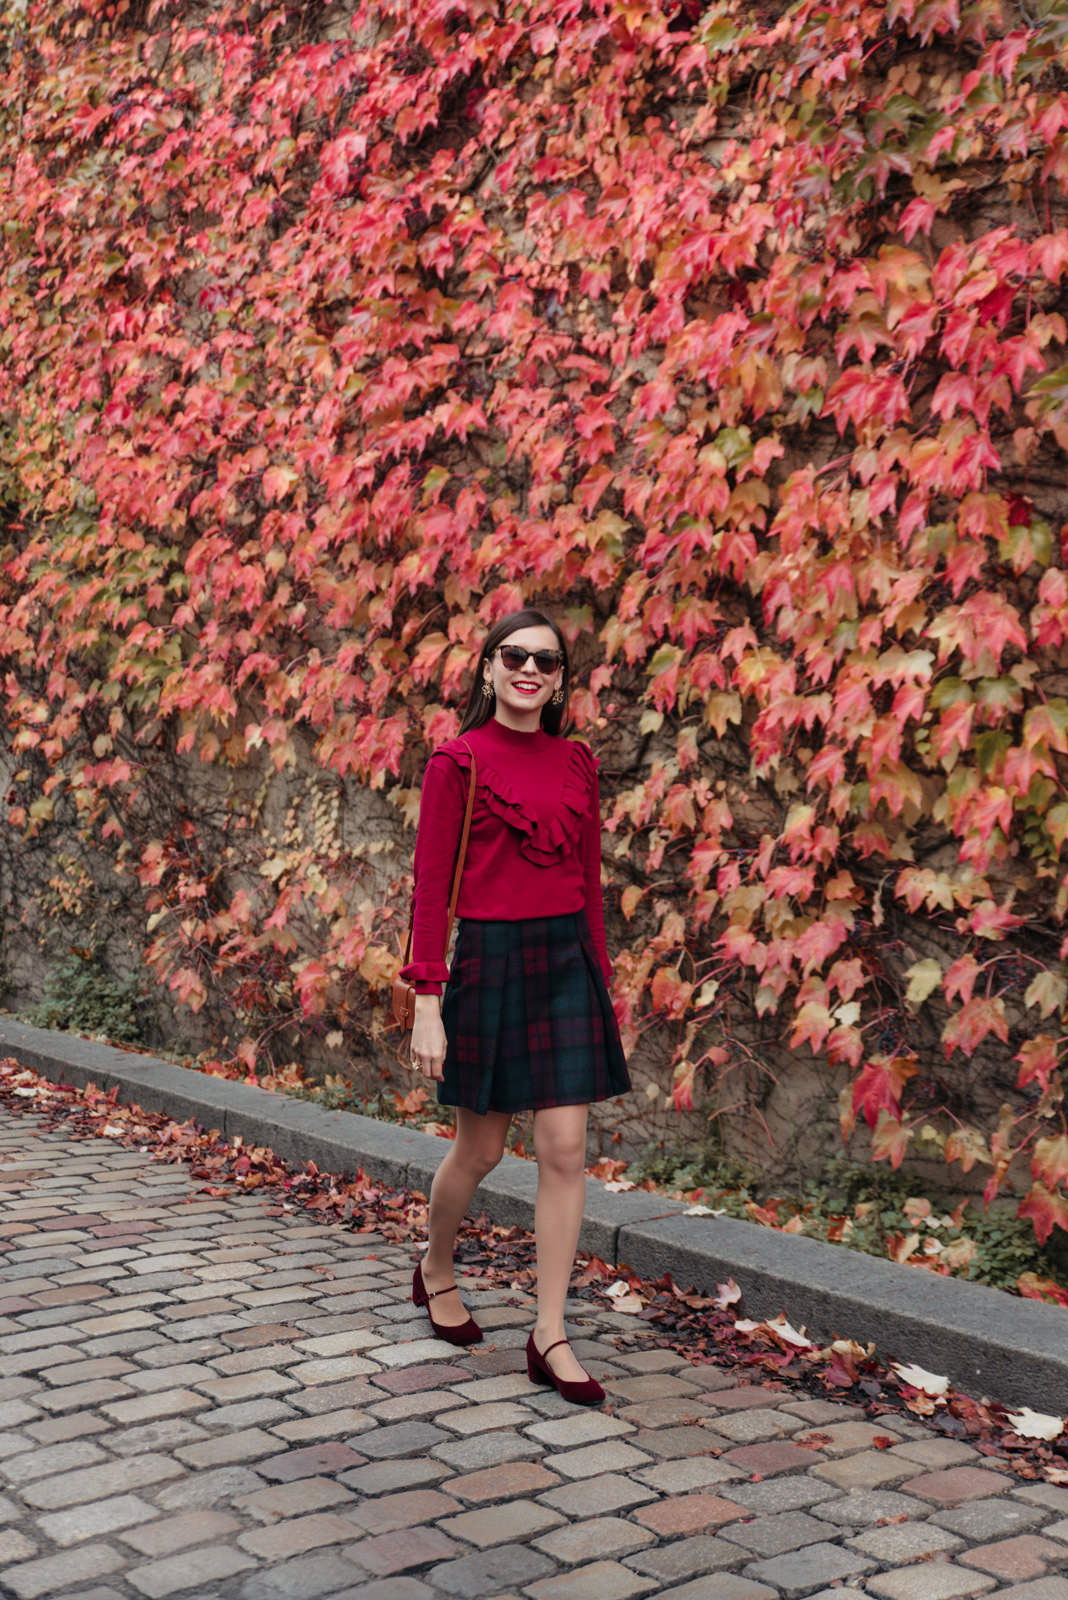 Blog-Mode-And-The-City-Looks-Mur-de-Feuilles-Montmartre-3